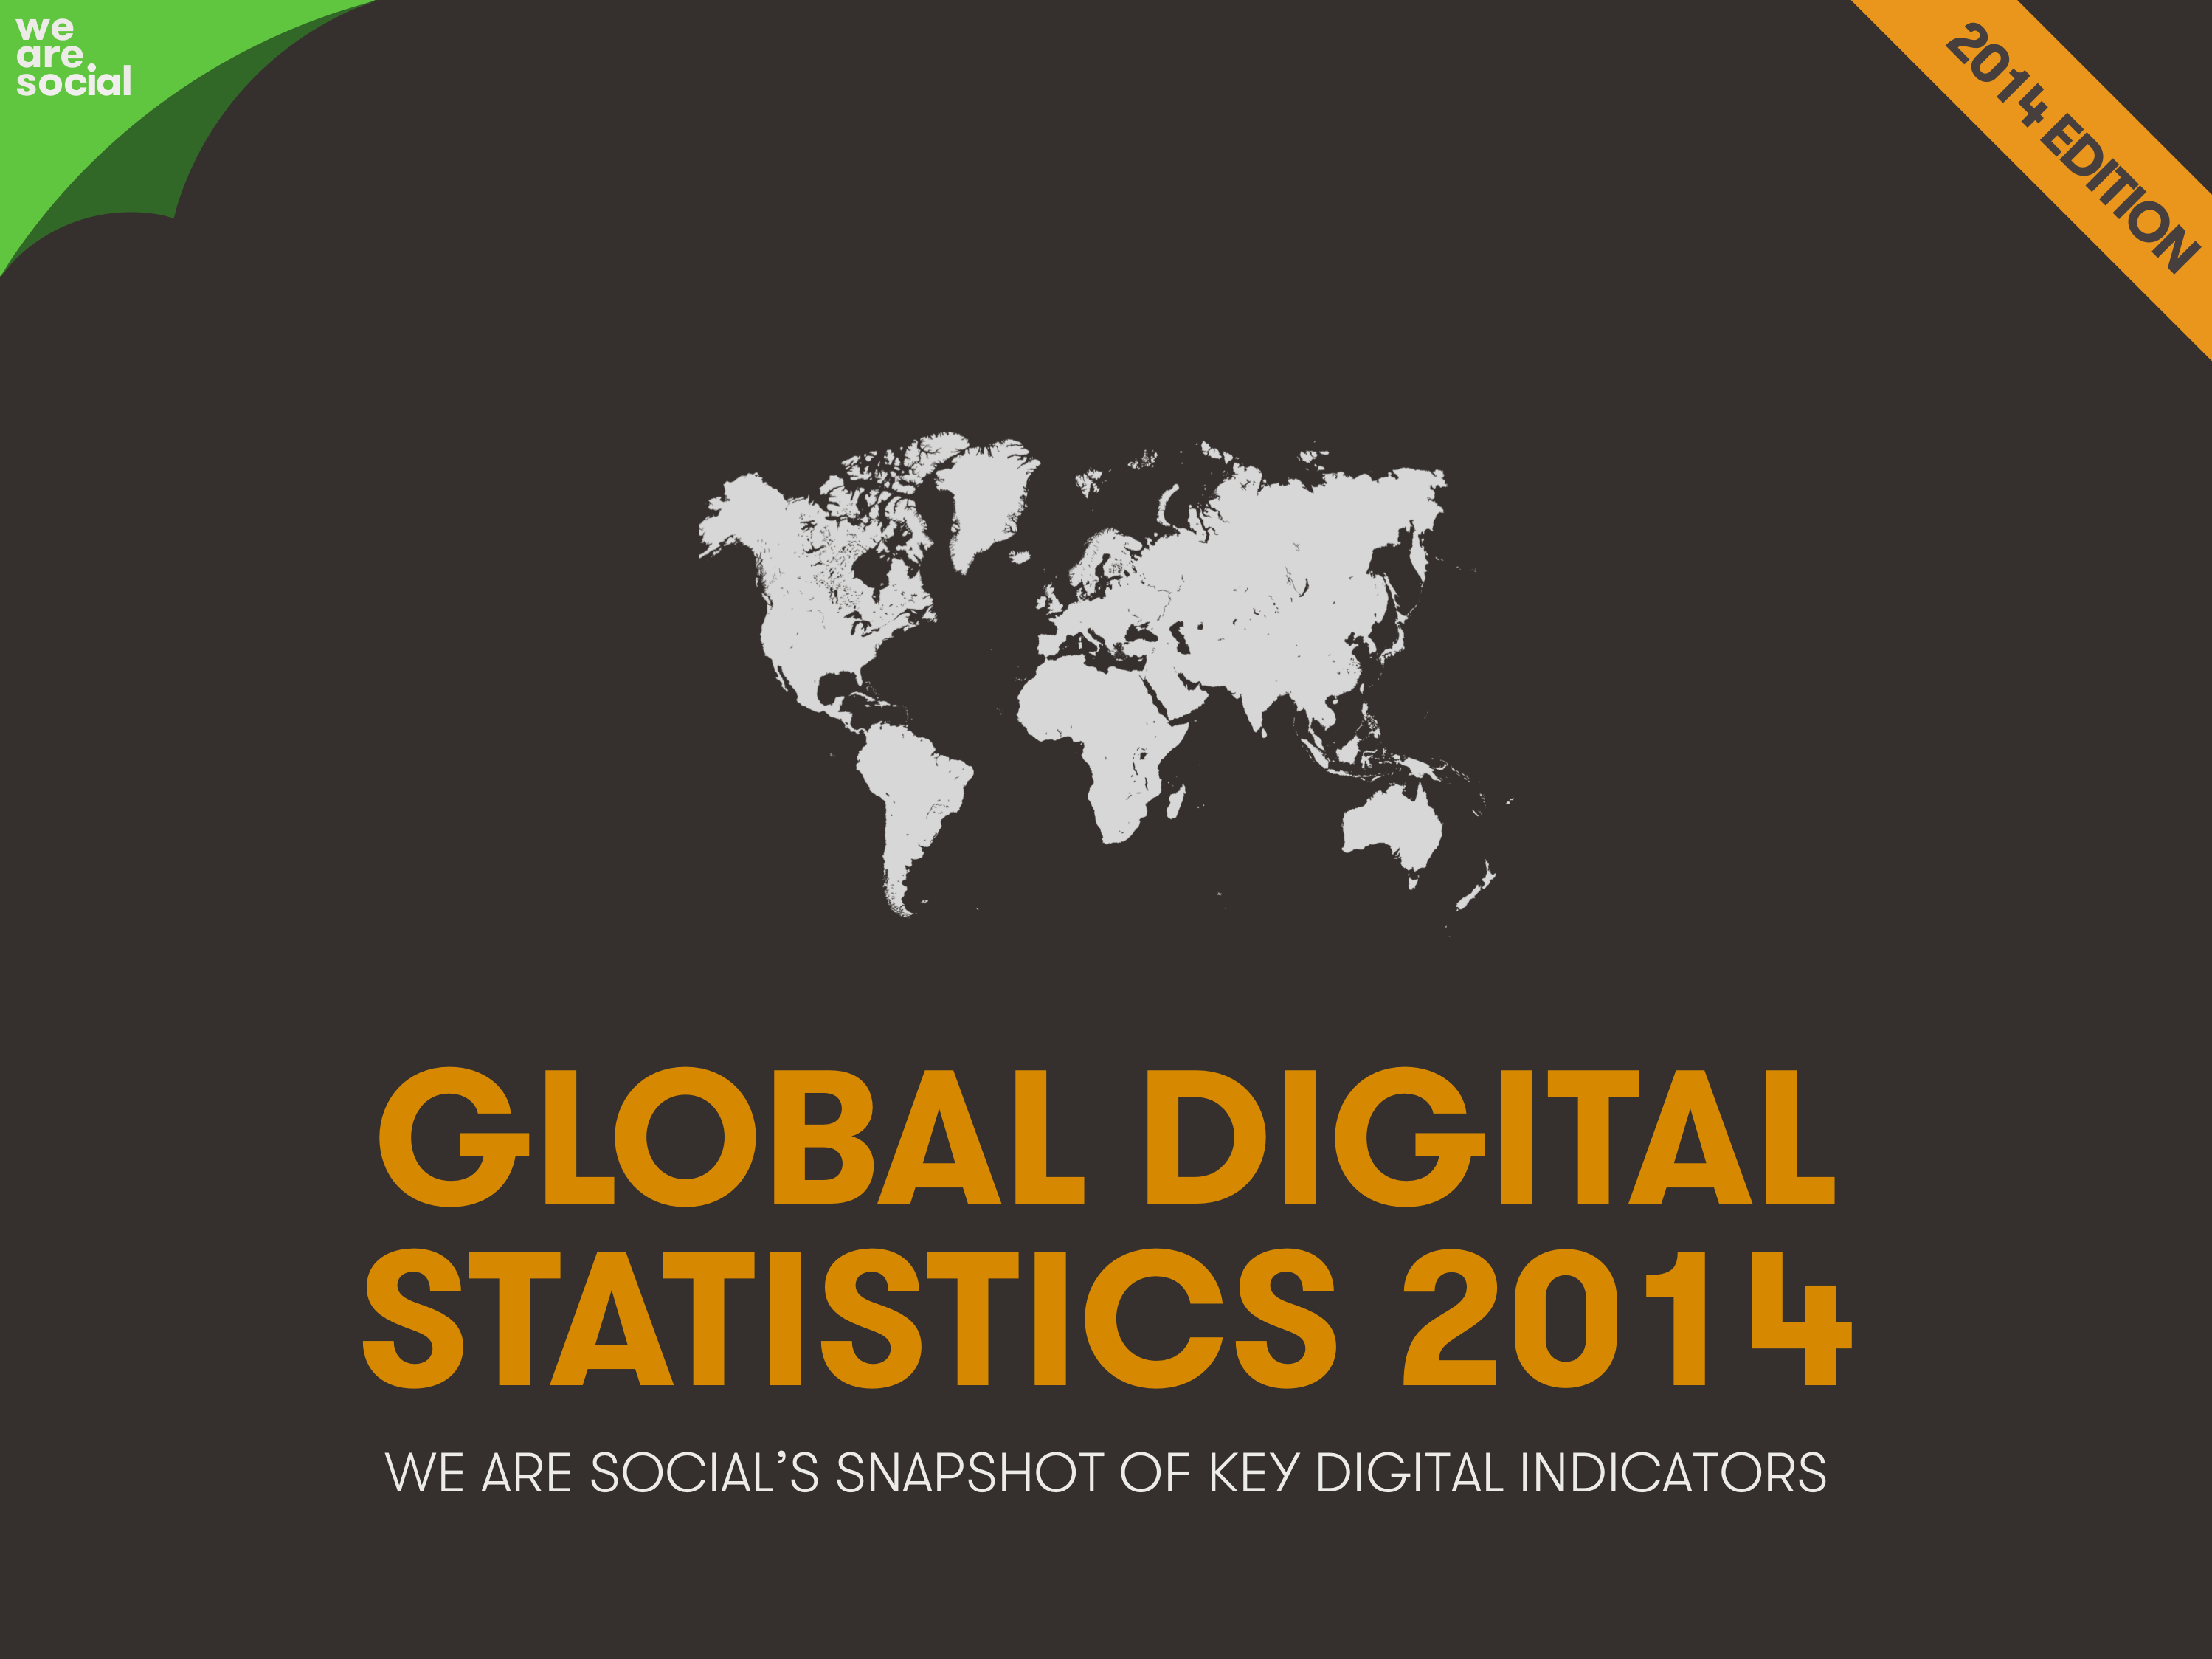 Global Digital Statistics 2014 by We Are Social